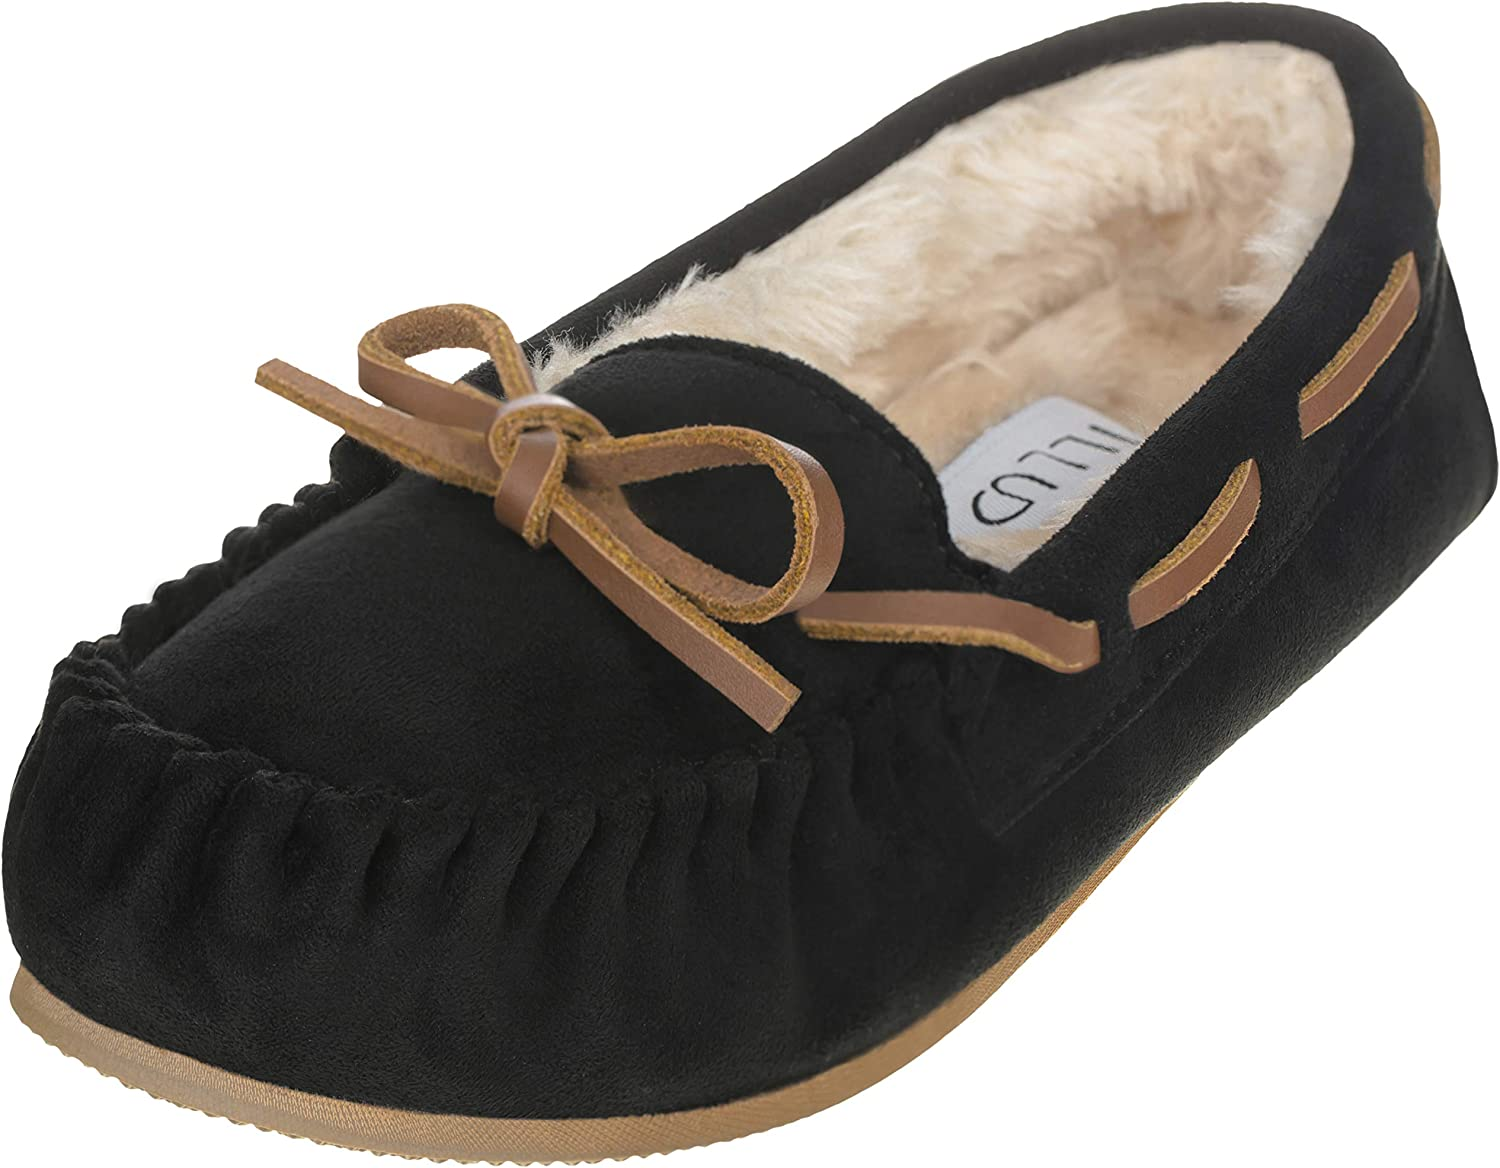 Loafers Moccasins Shoes